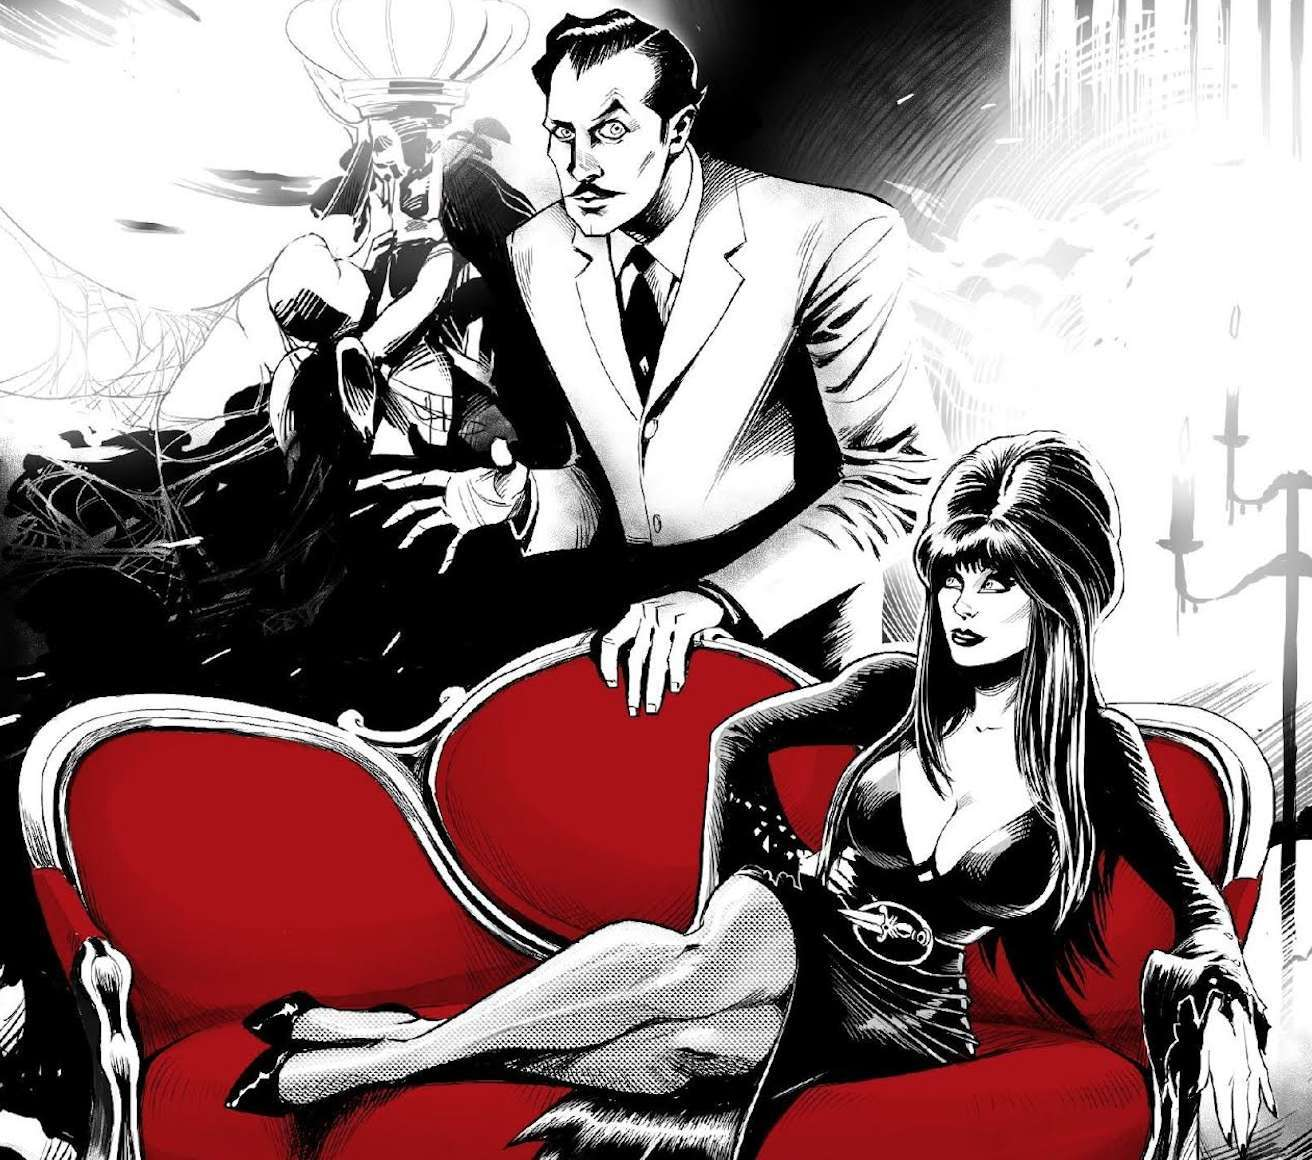 Illustration from the comic where Elvira is lying on a dark red couch posing while vincent price is behind the couch with a suit and a spooky pose. Aside from the couch everything else is in black and white.